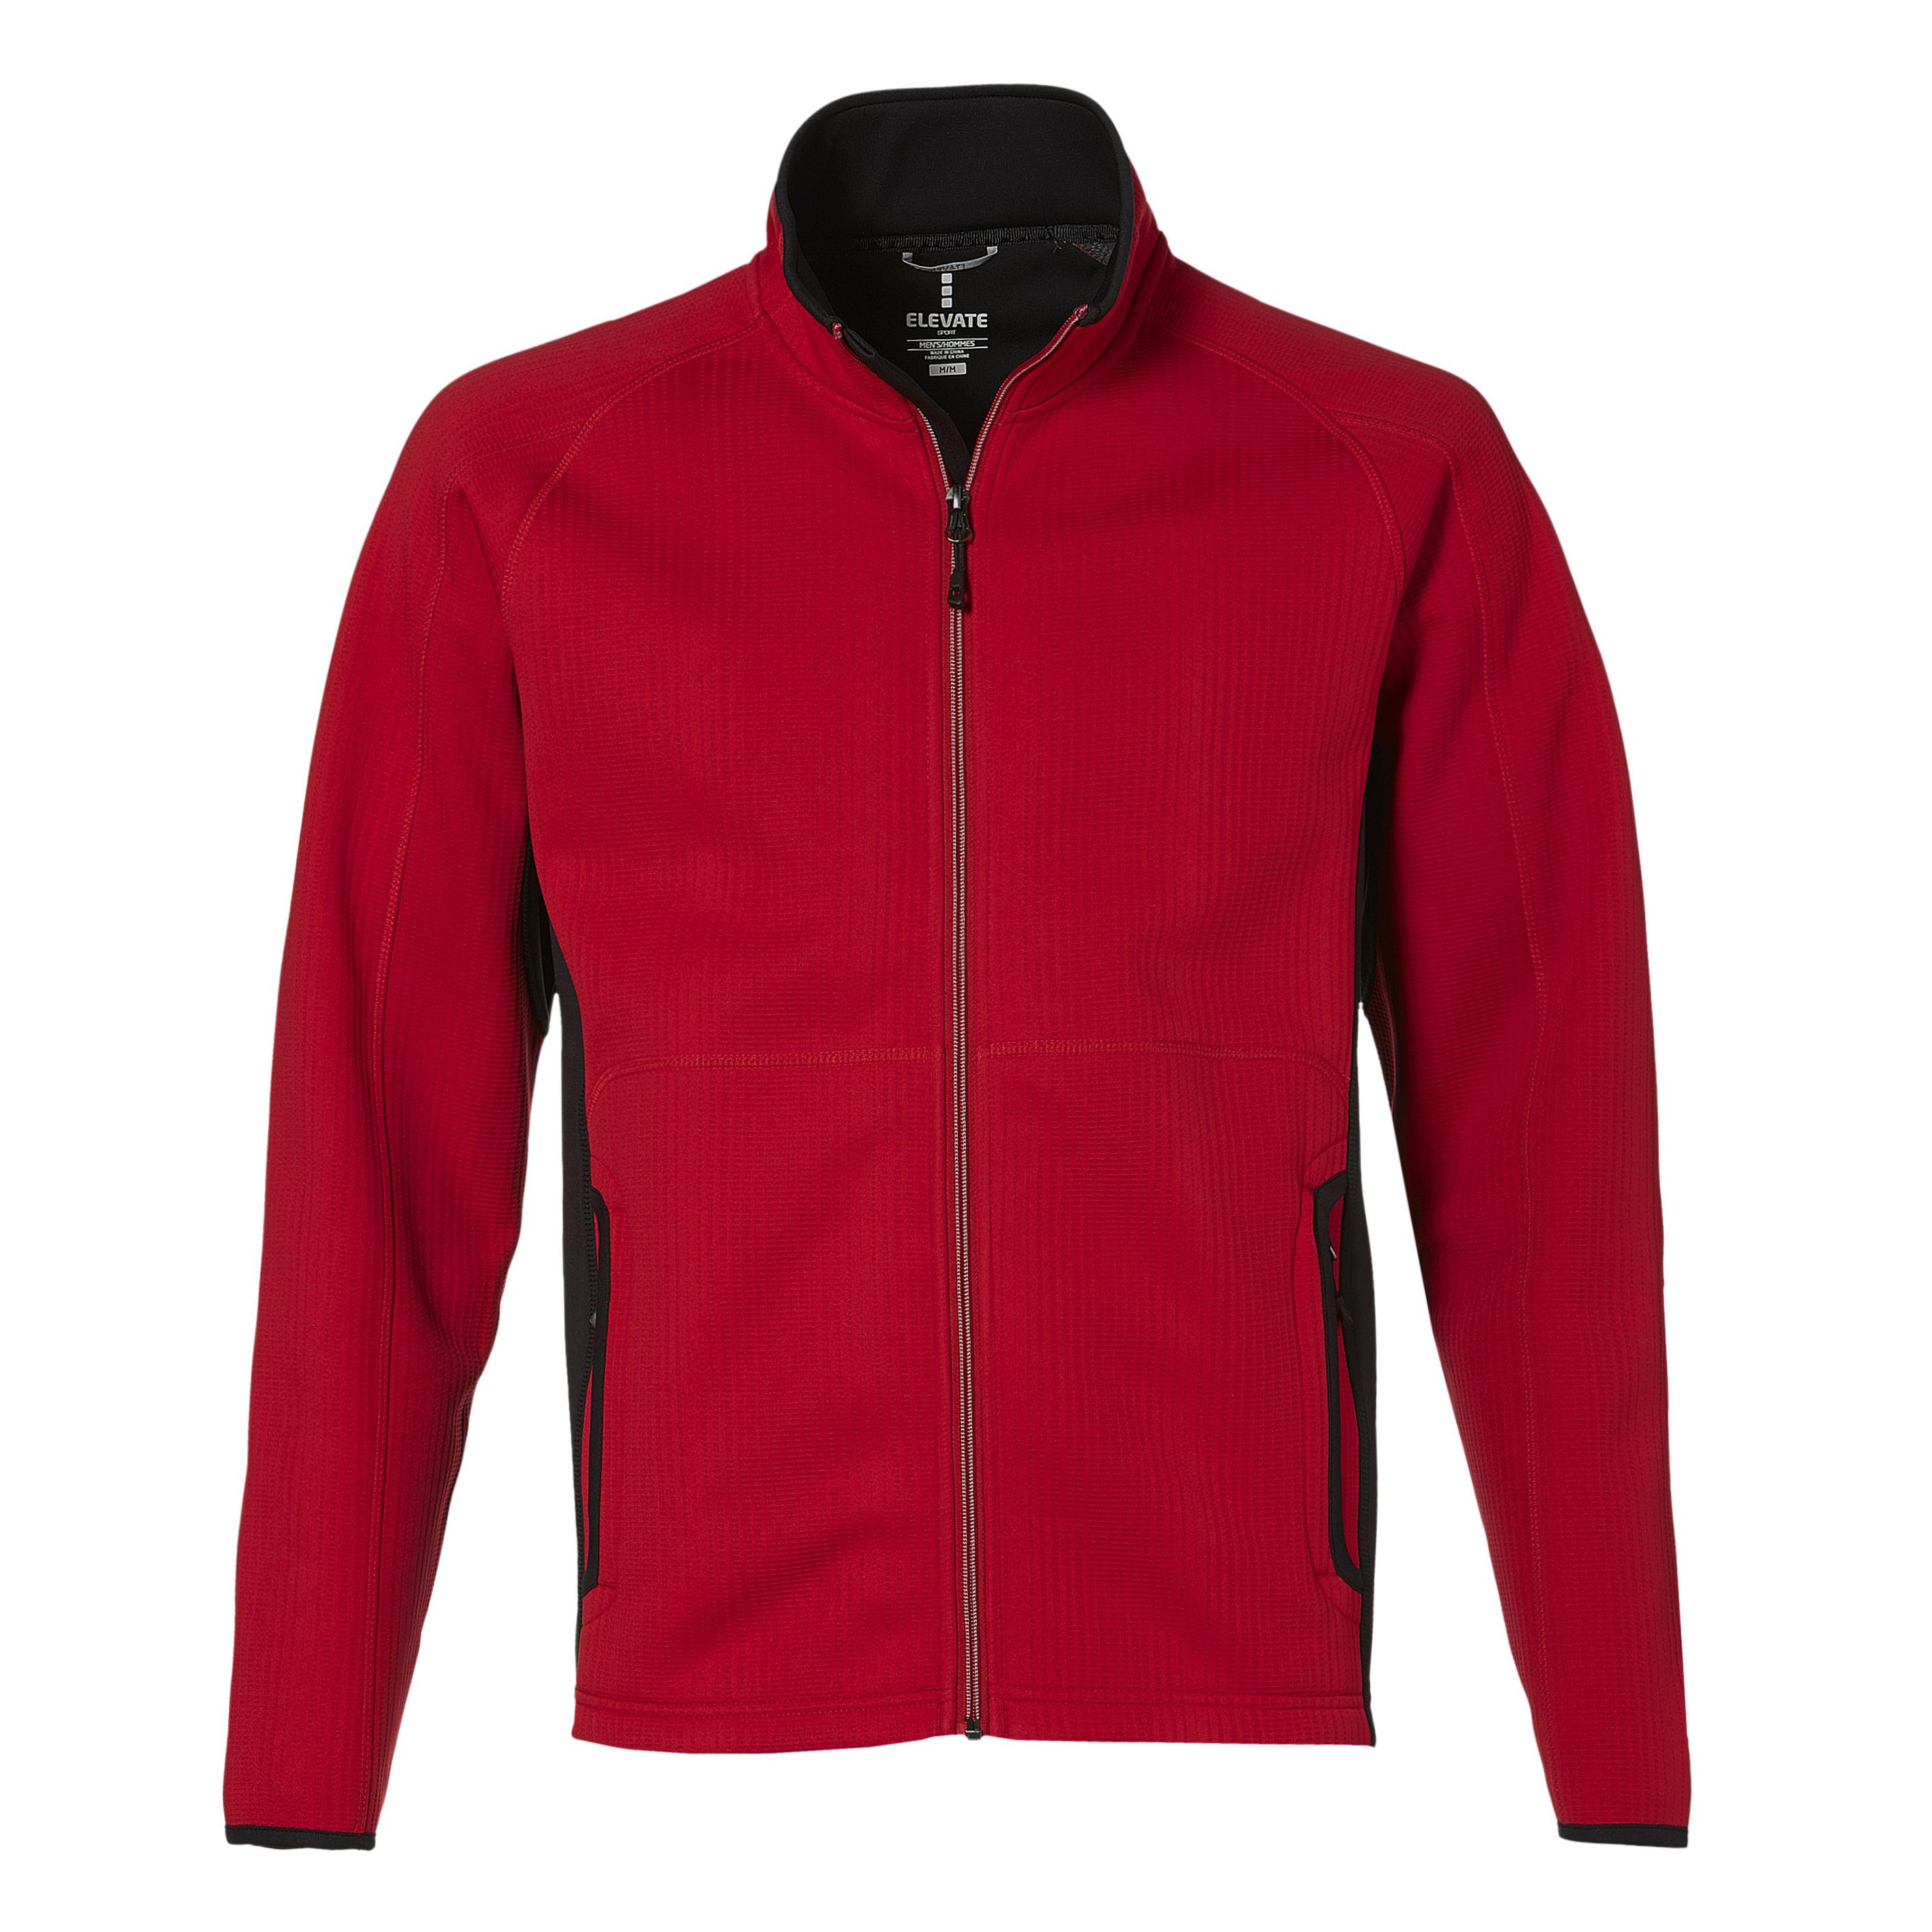 Mens Ferno Bonded Knit Jacket - Red Only